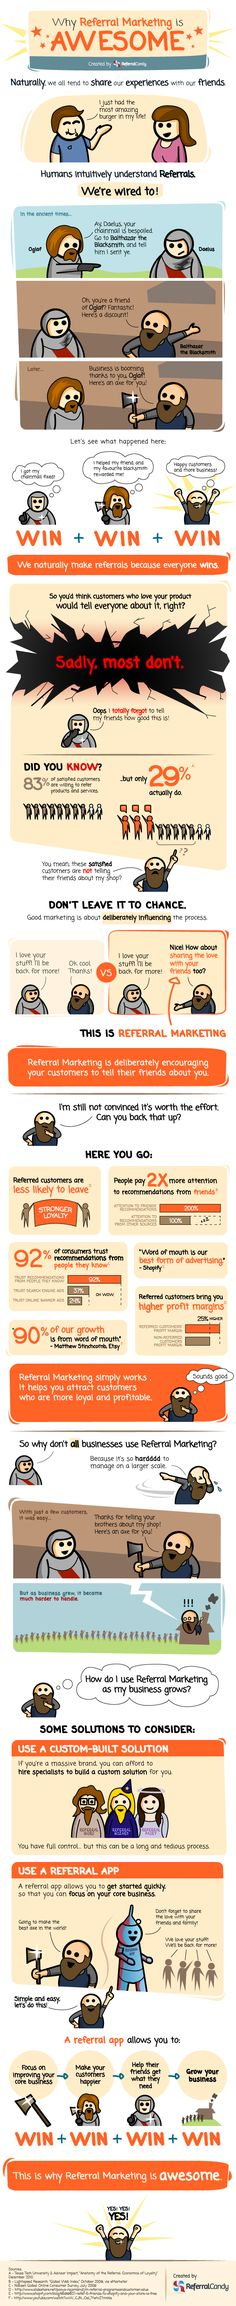 Why Referral Marketing is Awesome Infographic Small Business Marketing, The Marketing, Marketing Digital, Content Marketing, Internet Marketing, Online Marketing, Social Media Marketing, Marketing Ideas, Affiliate Marketing